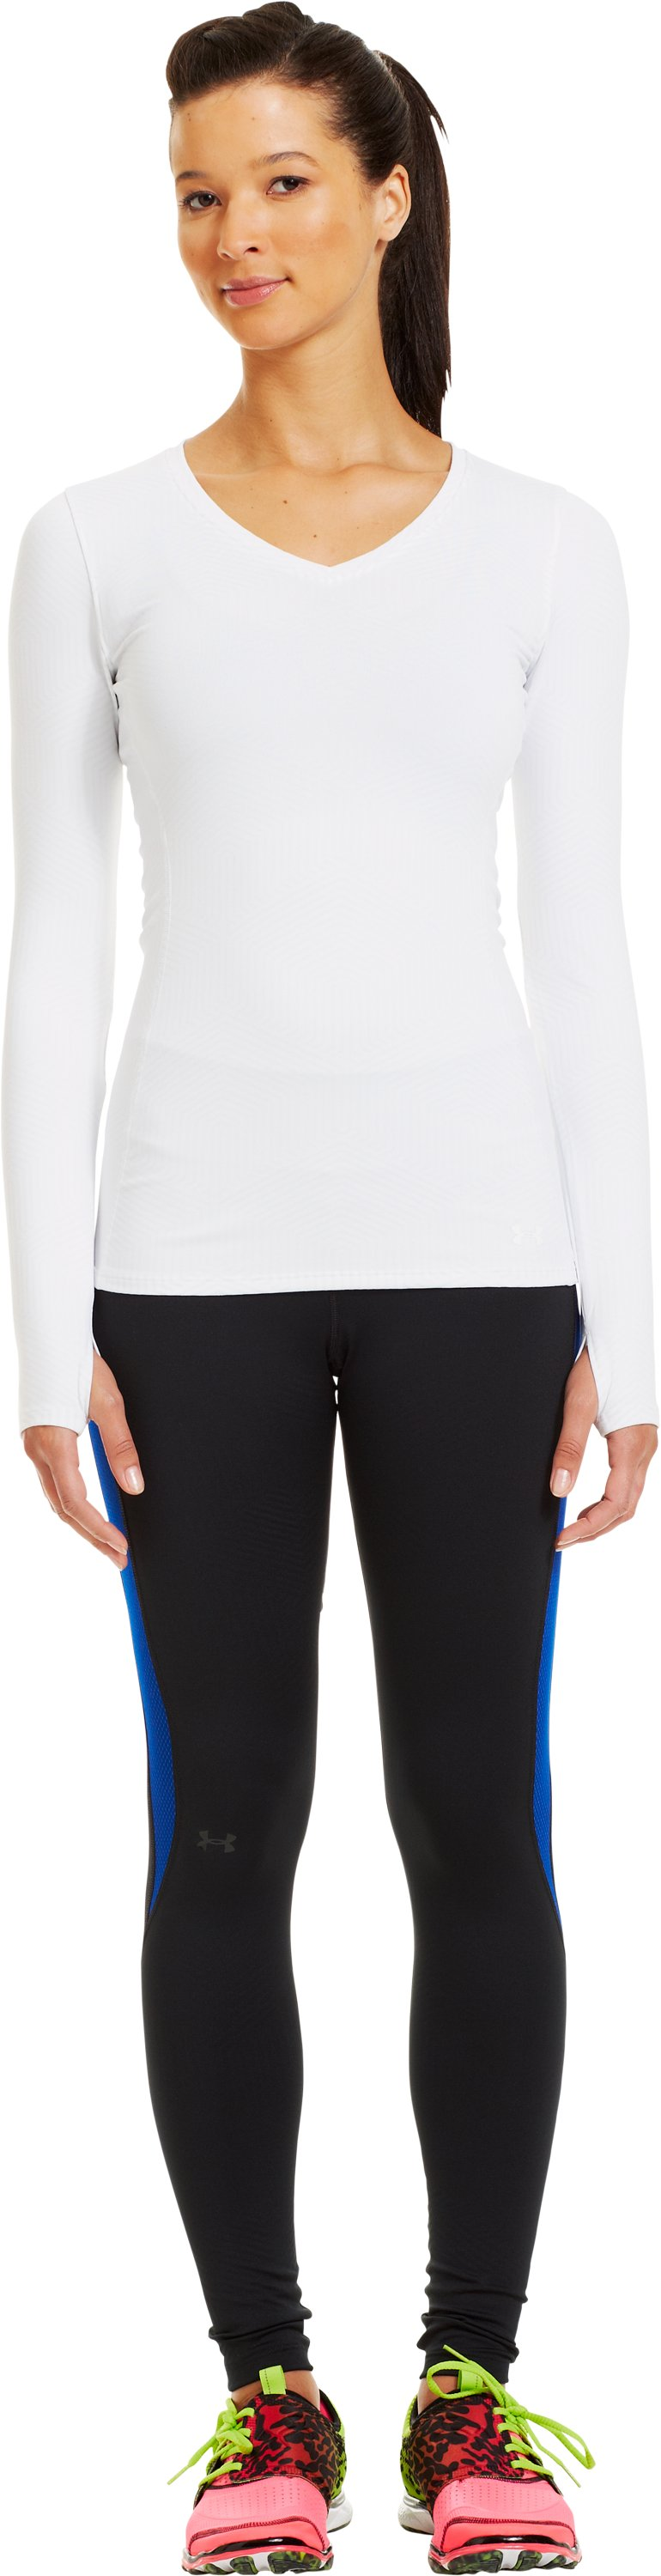 Women's ColdGear® Infrared V-Neck Long Sleeve, White